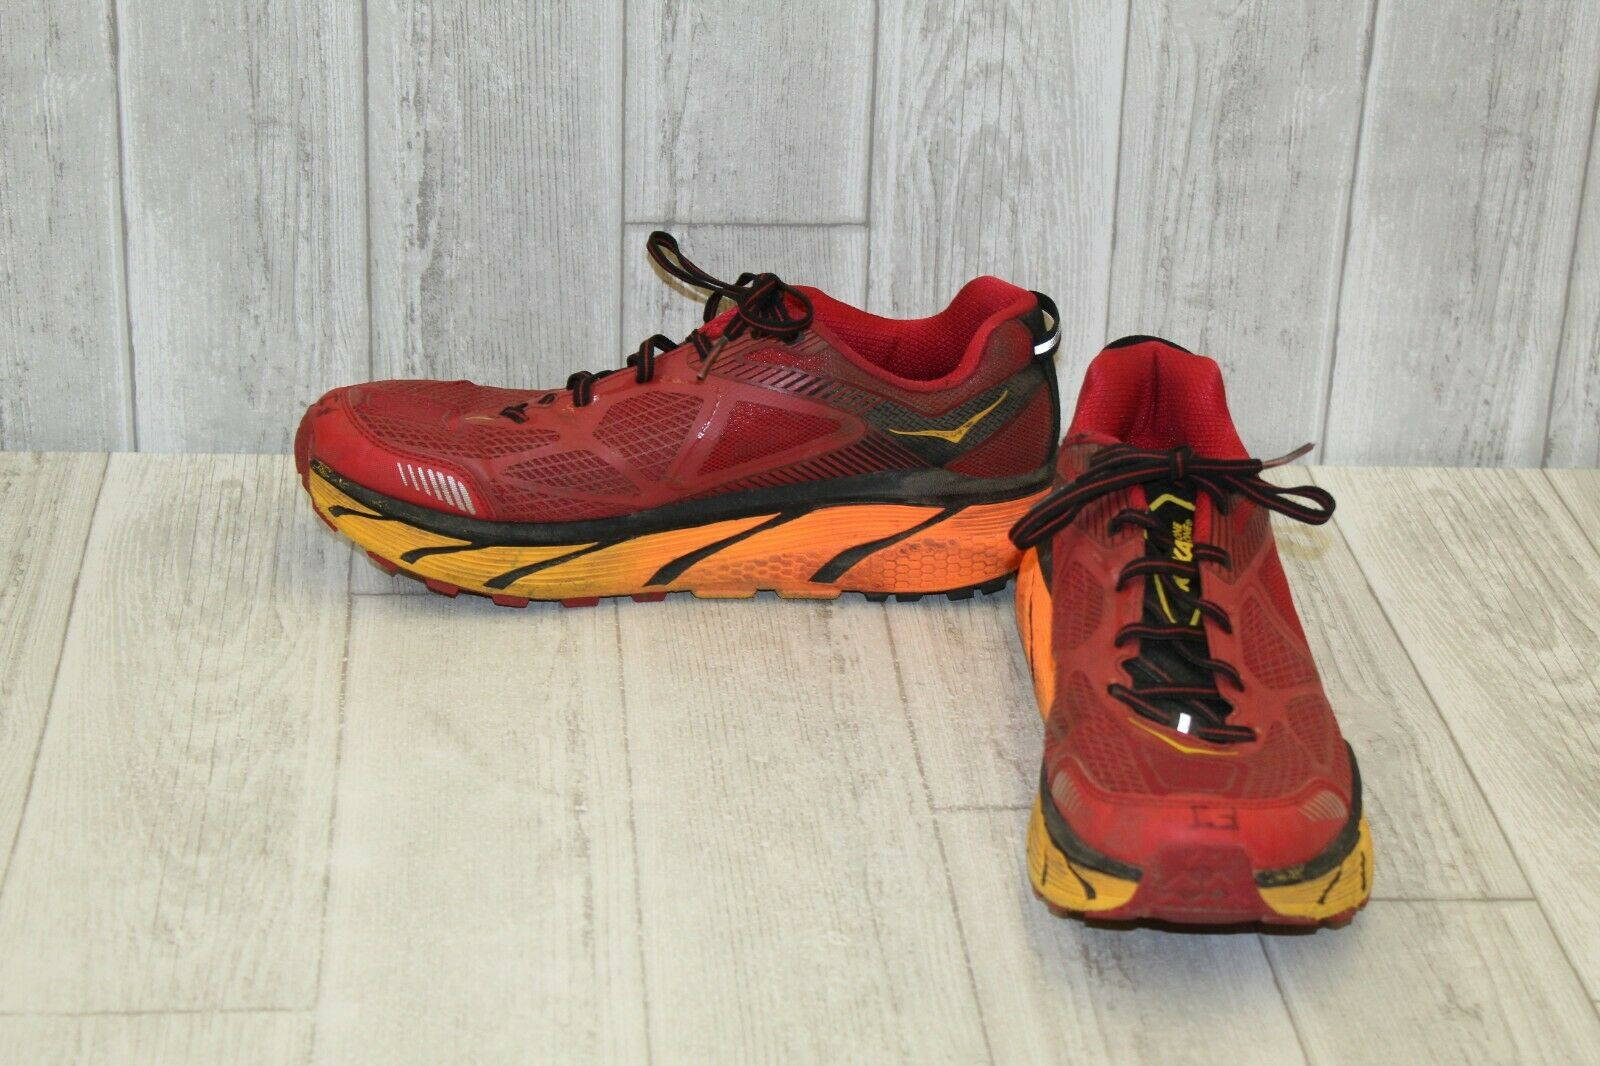 HOKA ONE ONE Challenger ATR 3 Running shoes - Red orange - Men's Size 11.5